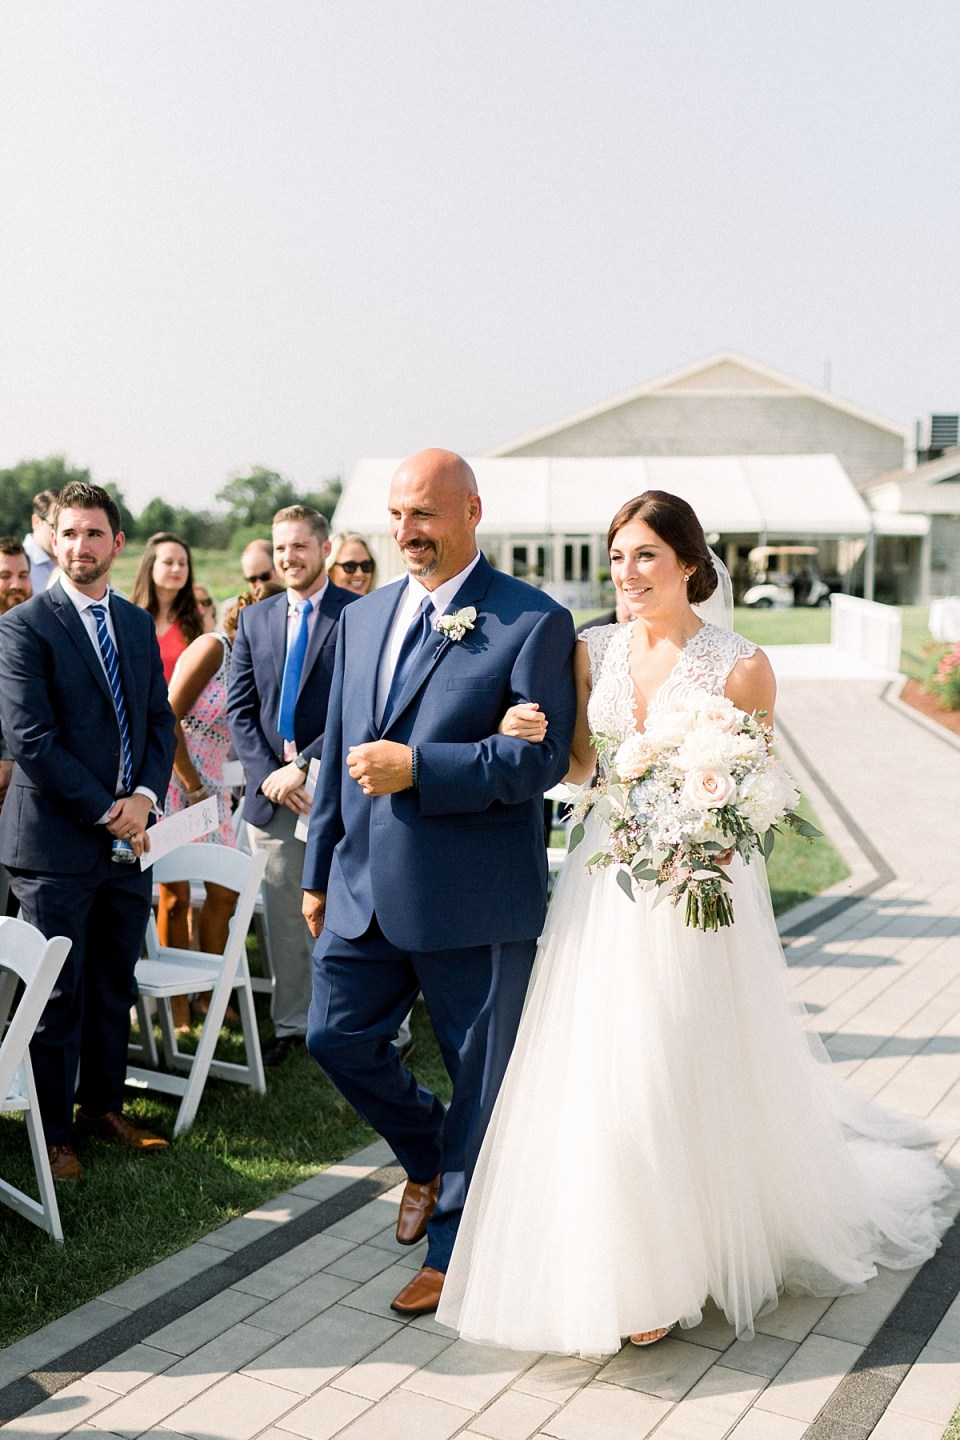 Arielle Peters Photography | Father of the bride walking the bride down the aisle at The Blue Heron at Blackthorn in South Bend, Indiana on wedding day.